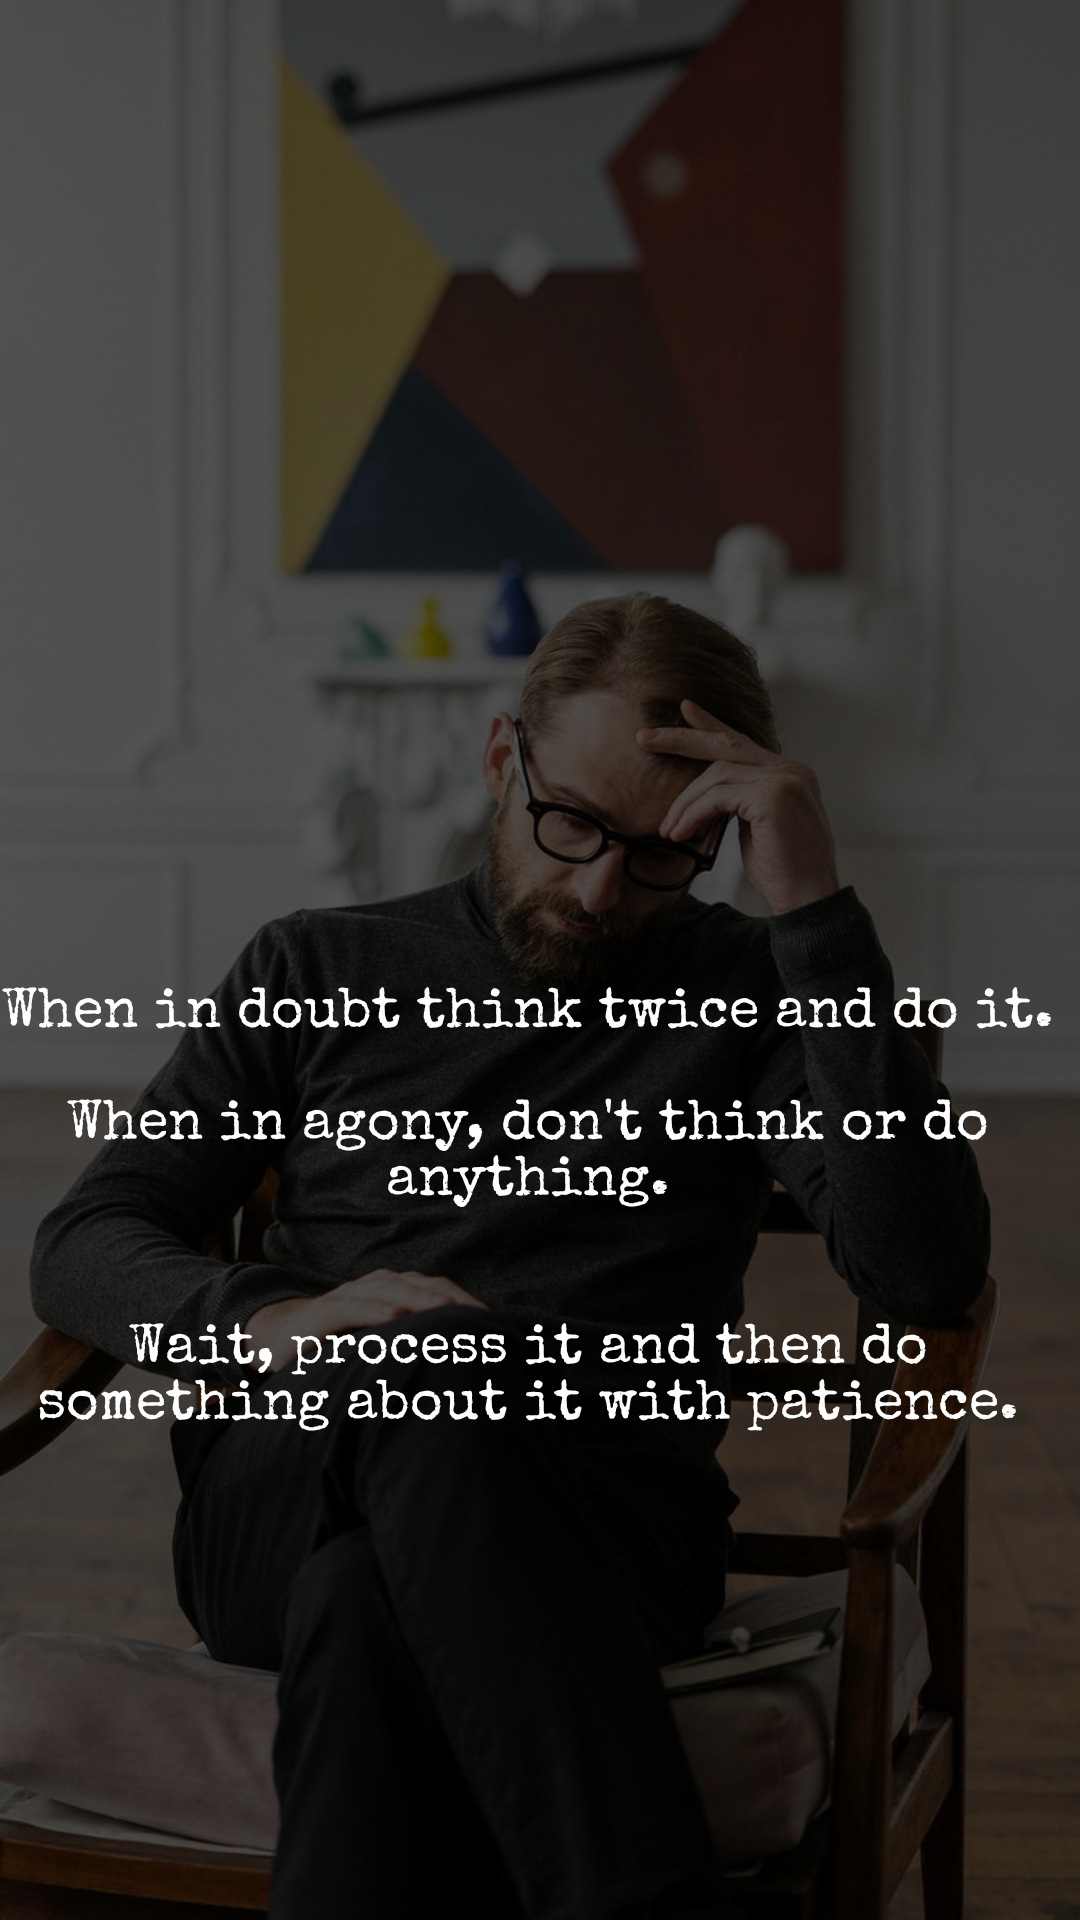 When in doubt think twice and do it.  When in agony, don't think or do anything.   Wait, process it and then do something about it with patience.